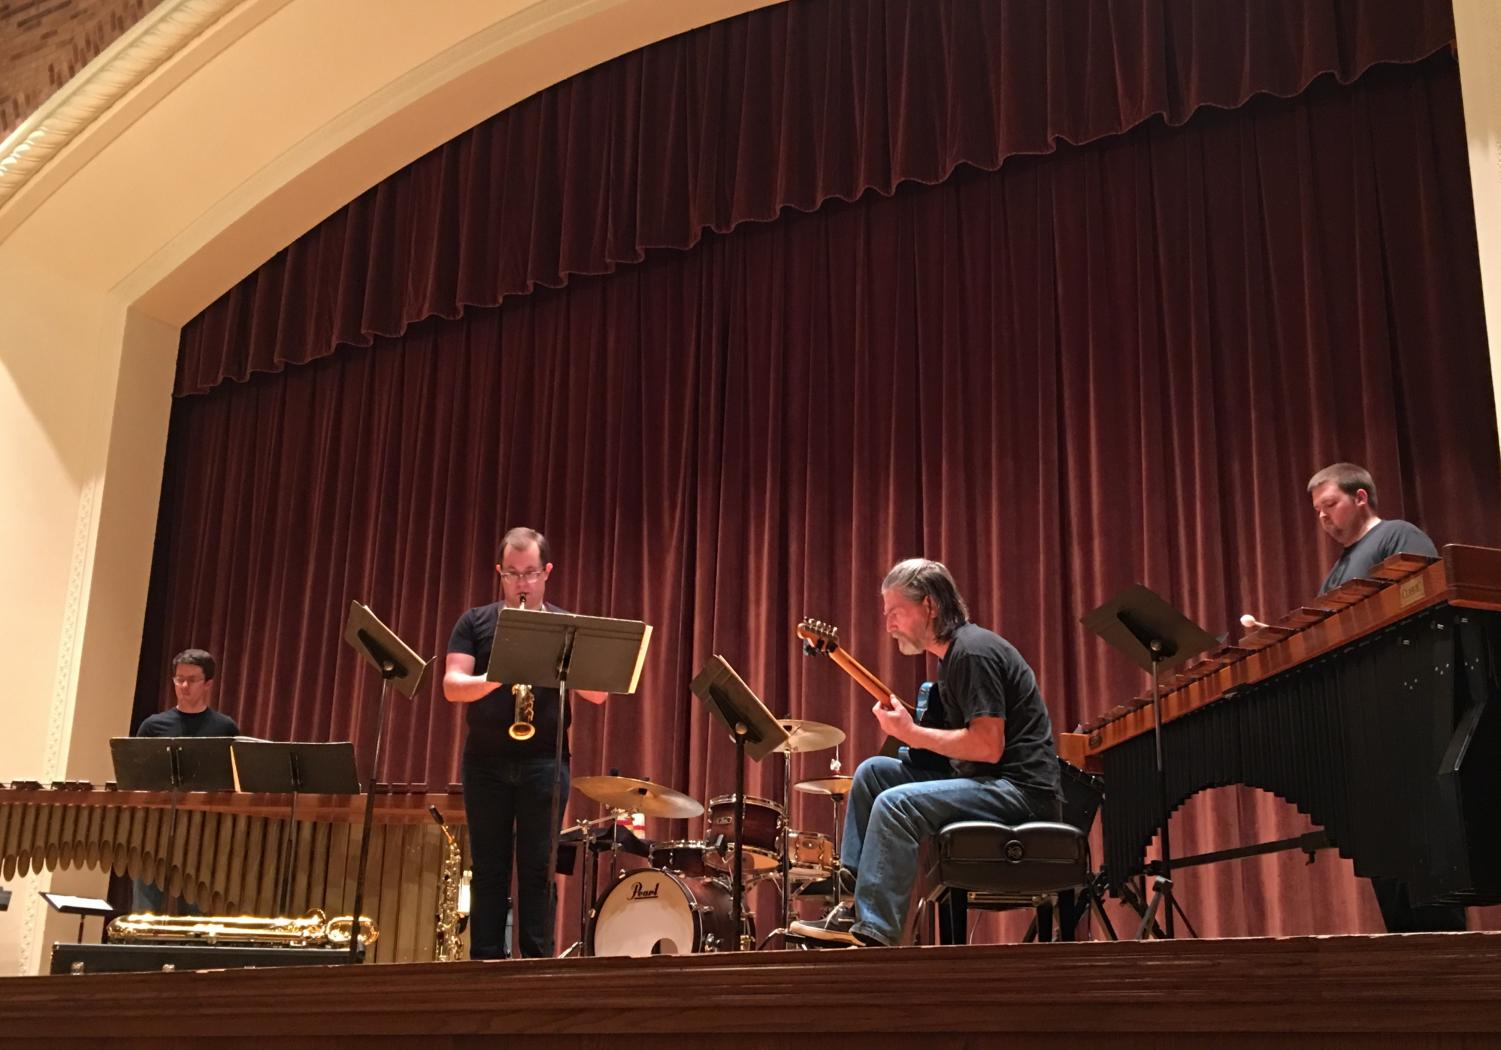 Faculty members Andrew J. Allen, saxophone and Gordon Hicken, marimba with Geoff Martin, marimba and Bruce Canifax, guitar playing Smoke by Marc Mellits. Photo by Peyton Alonzo.